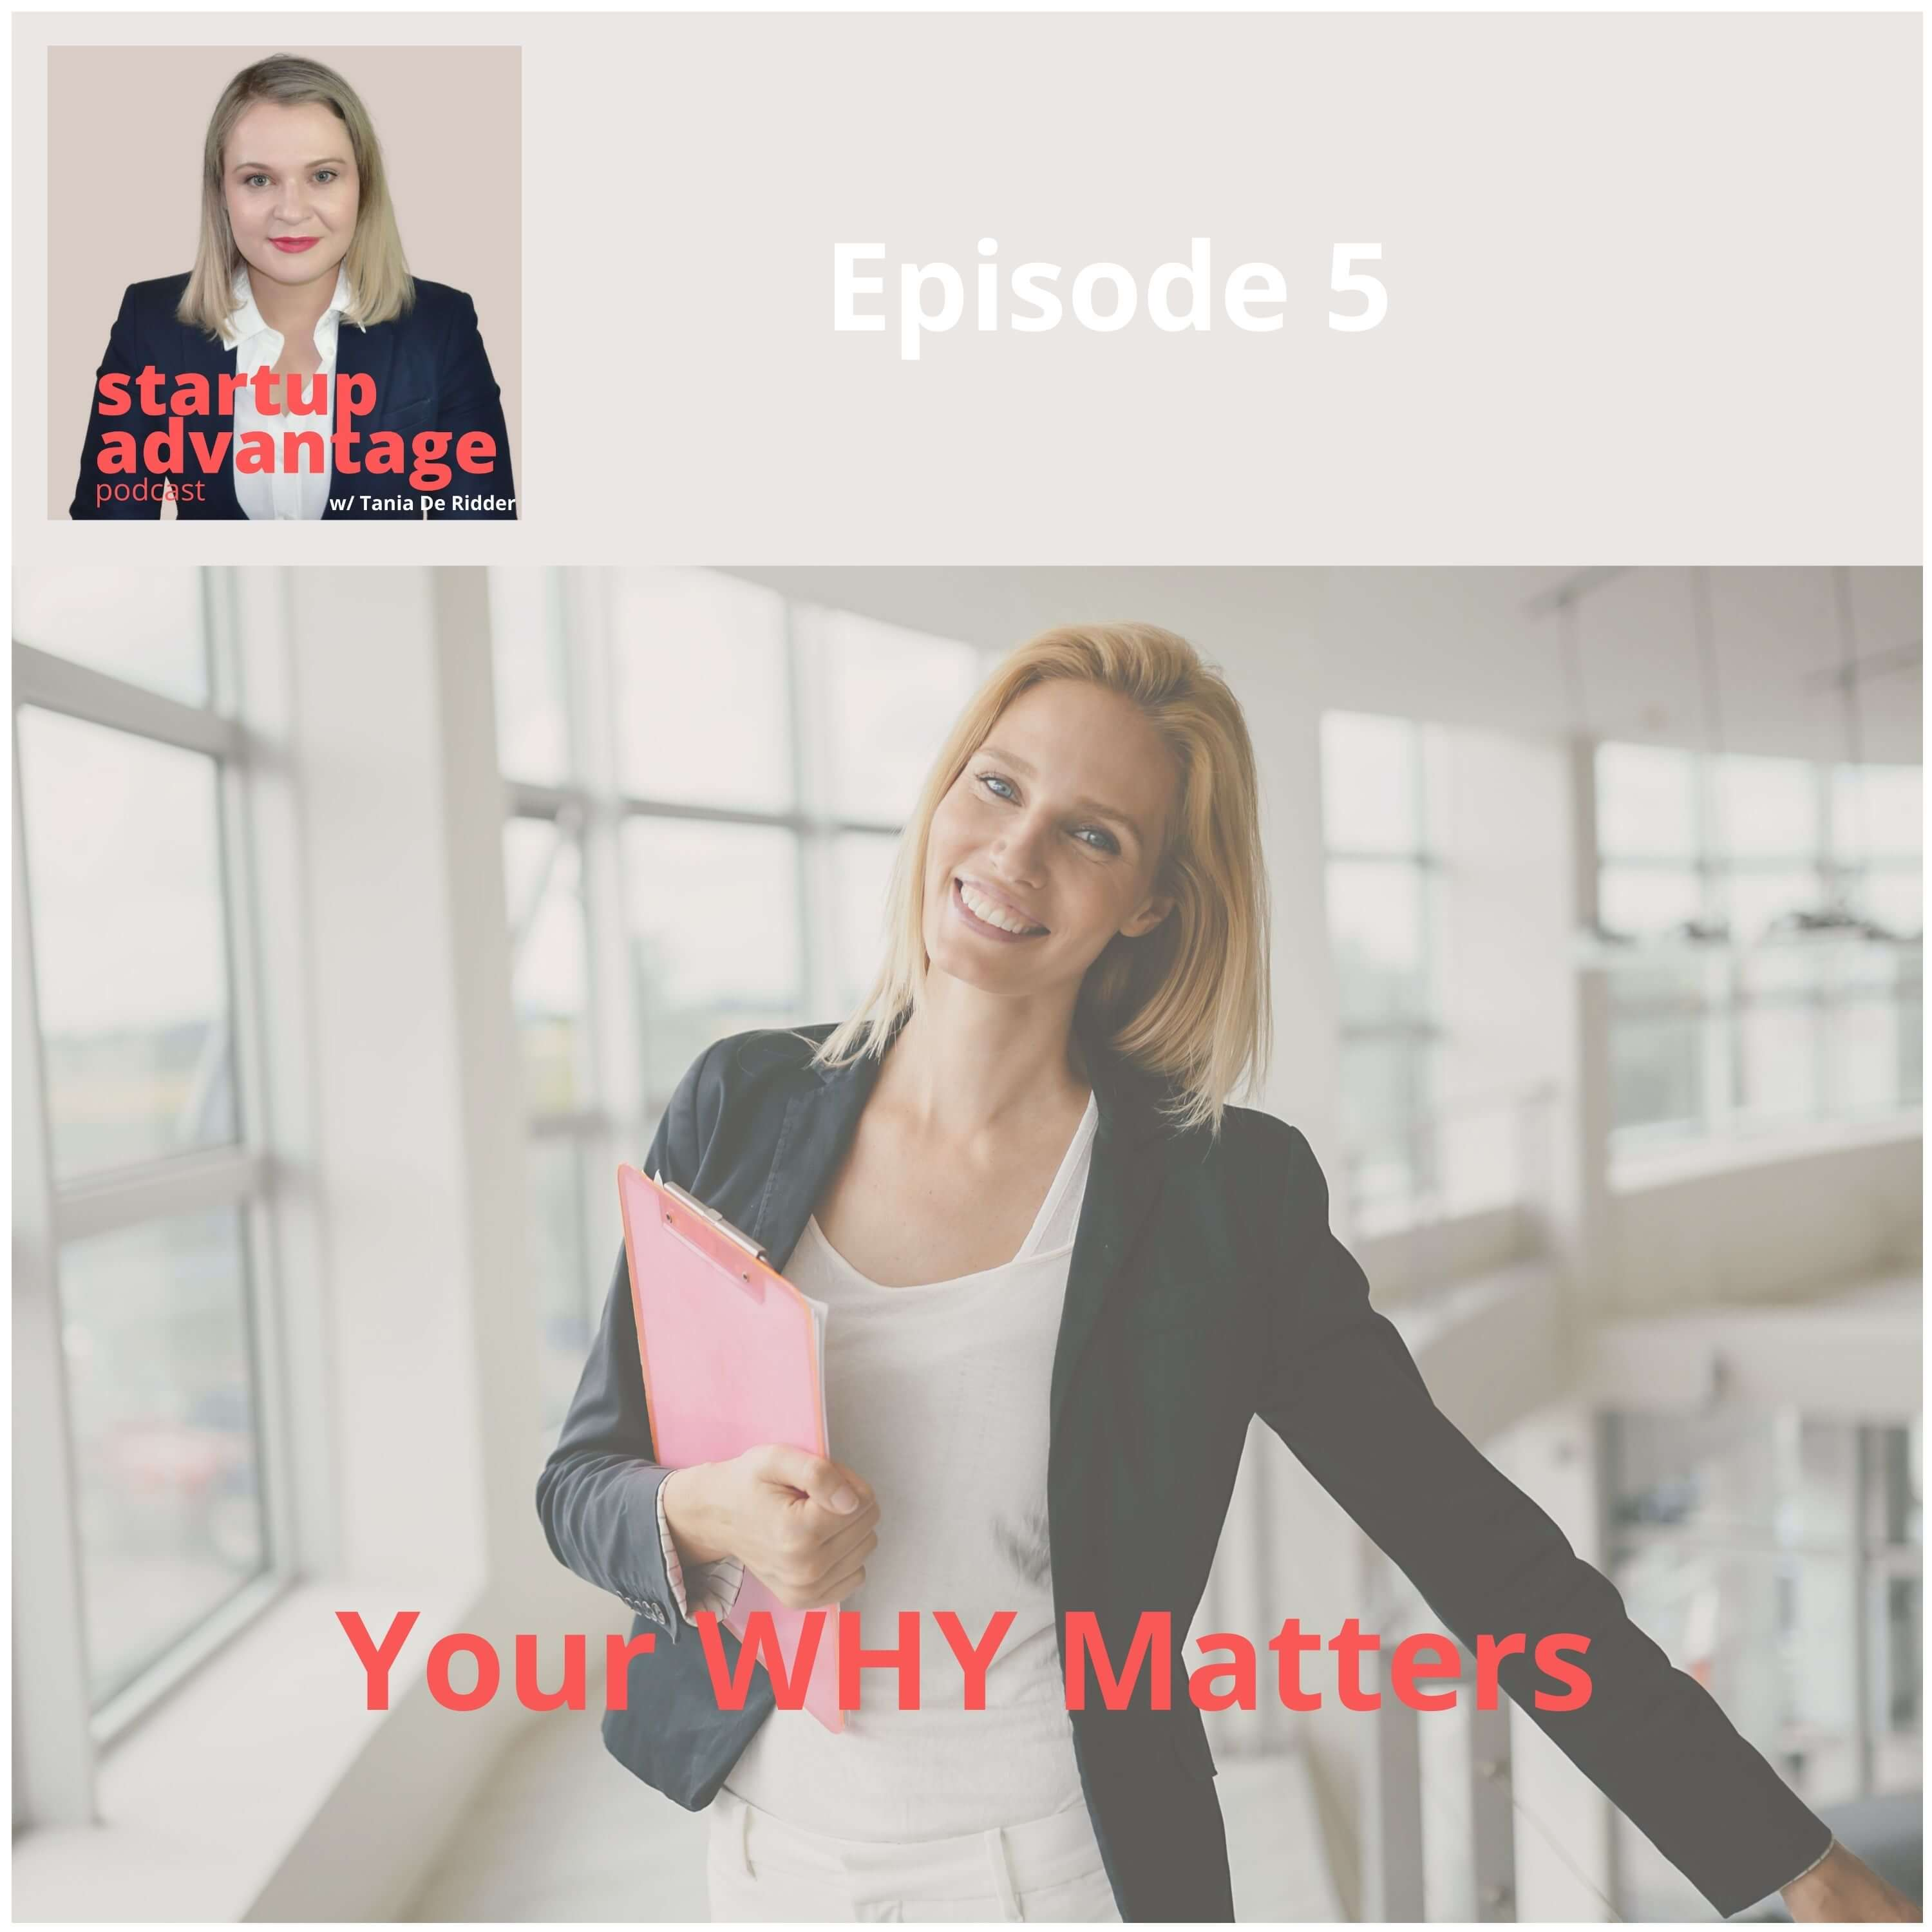 Your WHY Matters: 3 Questions to (W)ork (H)appily for (Y)ourself